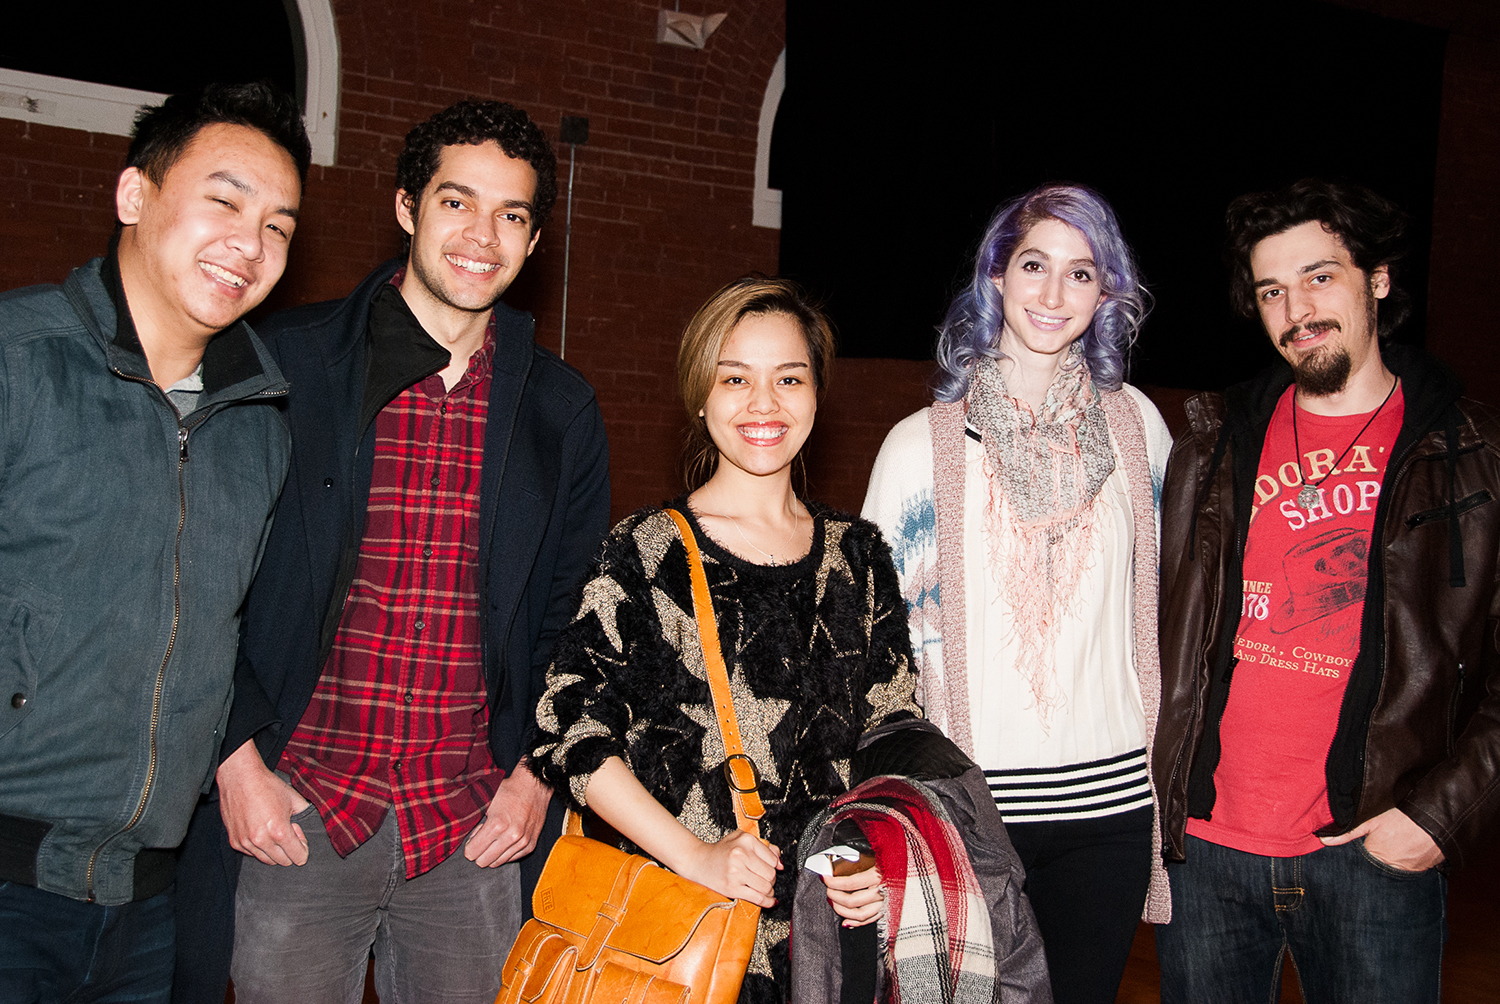 Loi Hyunh and team with Geena Matuson and Steve Anthony at Boston Indie Mafia event, 2015. Photo by Light Filters Studio.